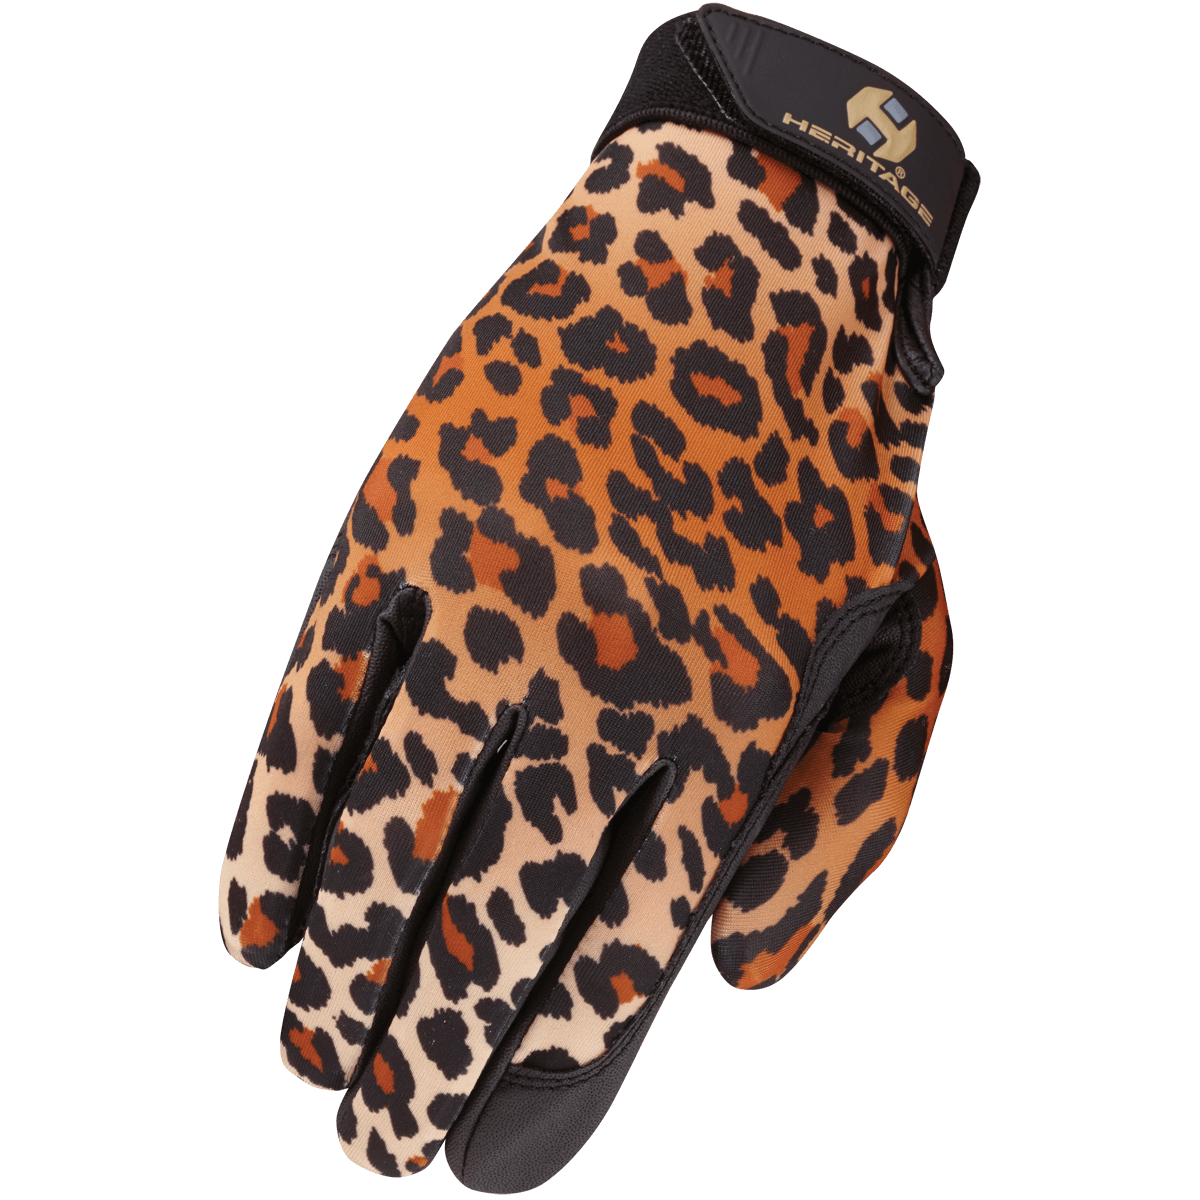 9d117704ff00f Heritage gloves performance glove leopard png 1200x1200 Leopard riding  gloves